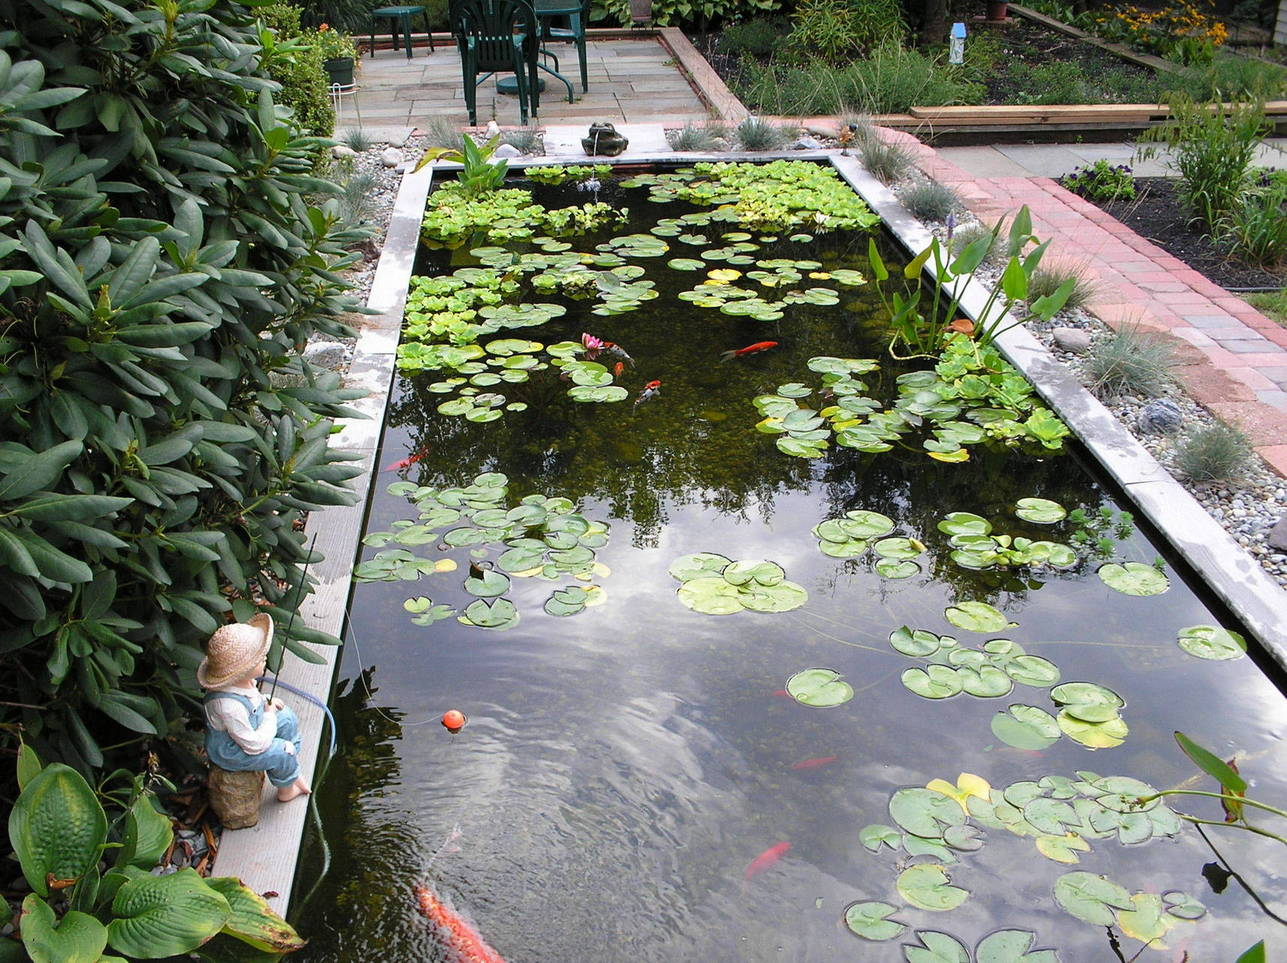 Oman landscape home landscaping designs your own t shirts for Koi fish pond garden design ideas